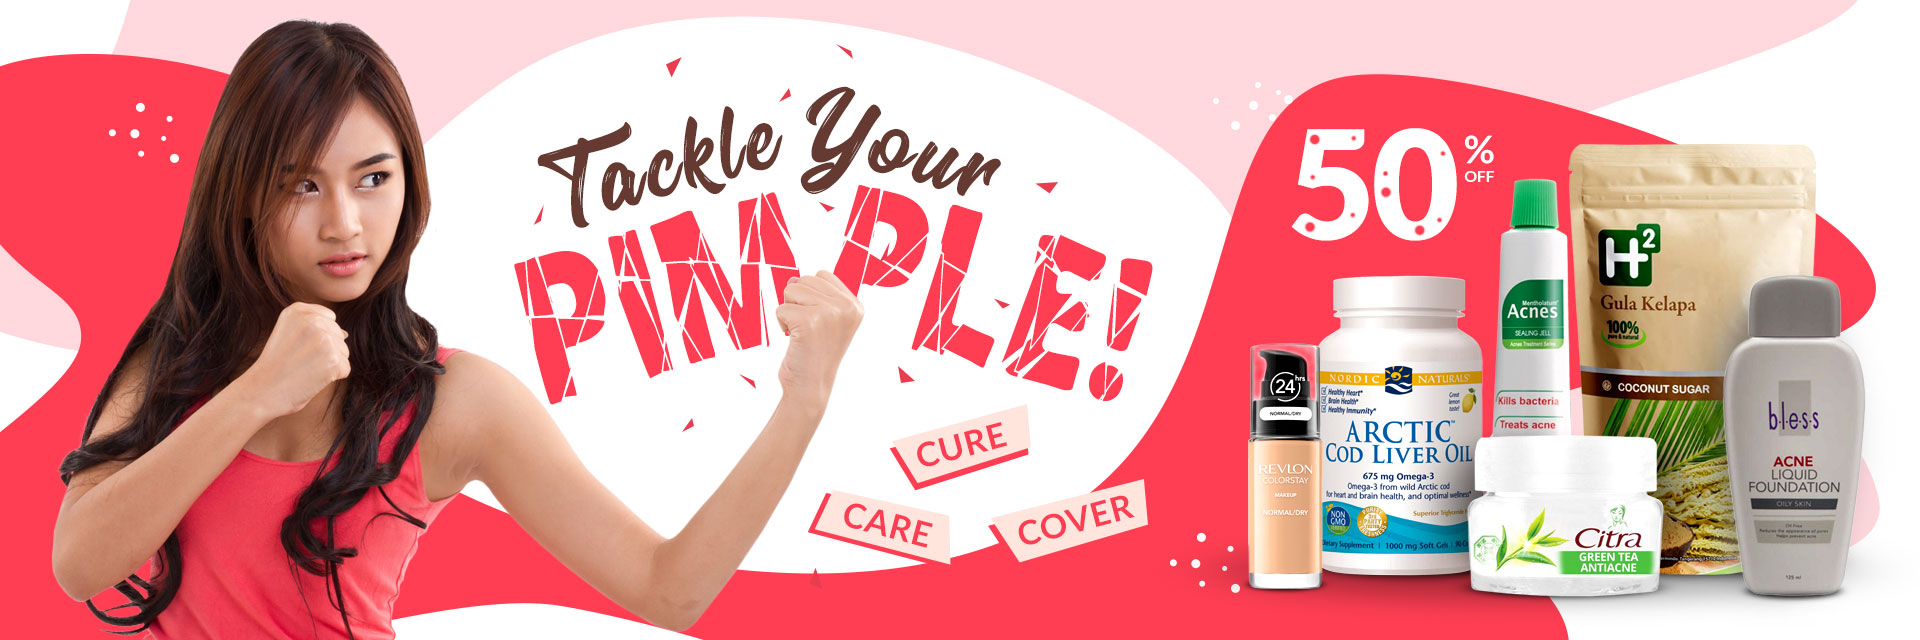 Tackle Your Pimple